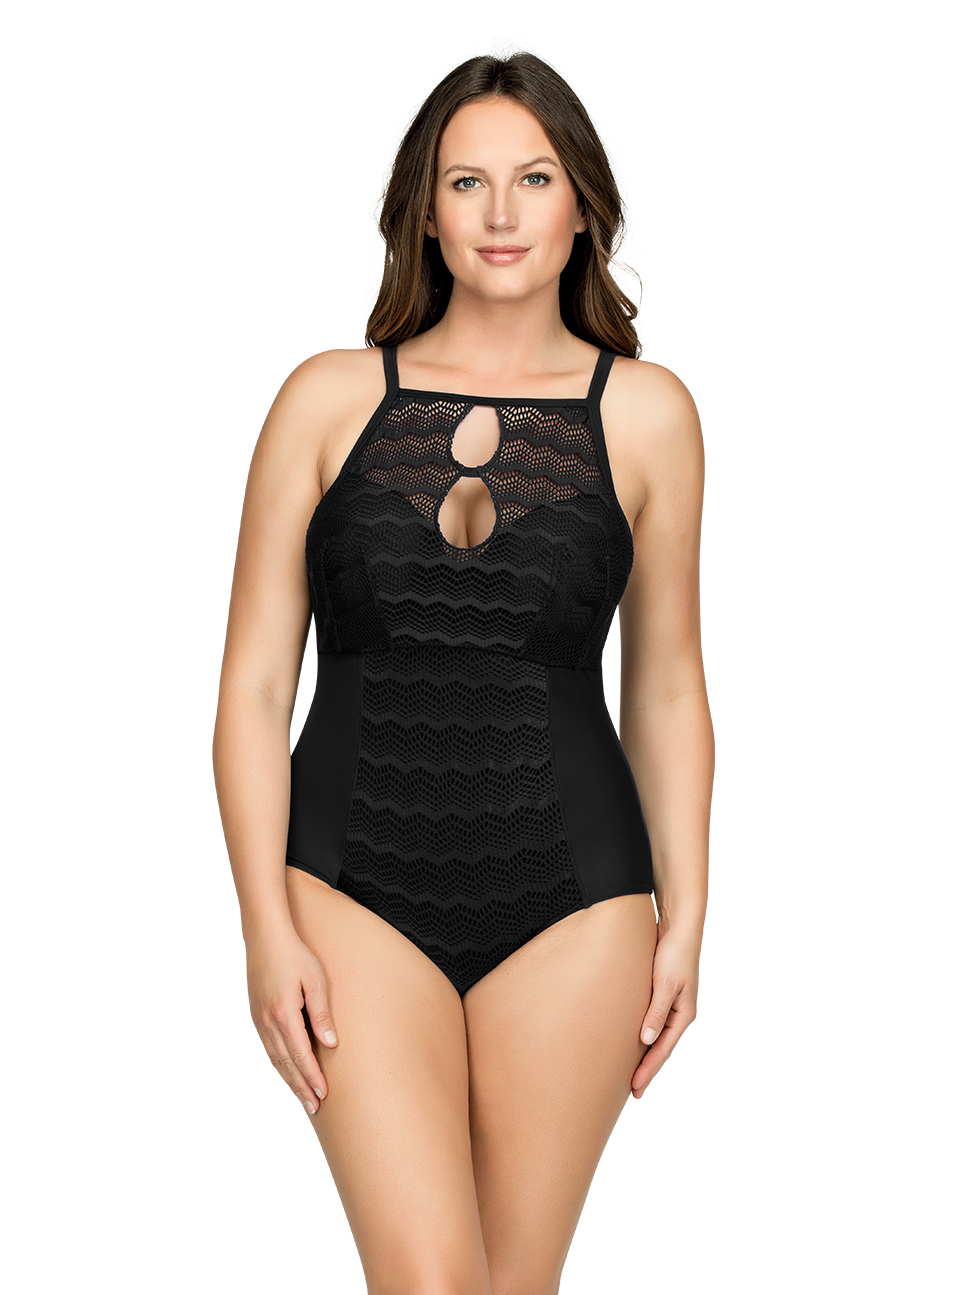 PARFAIT Keira OnePieceSwimsuitS8076 Black Front1 - Keira One-Piece Swimsuit Black S8076